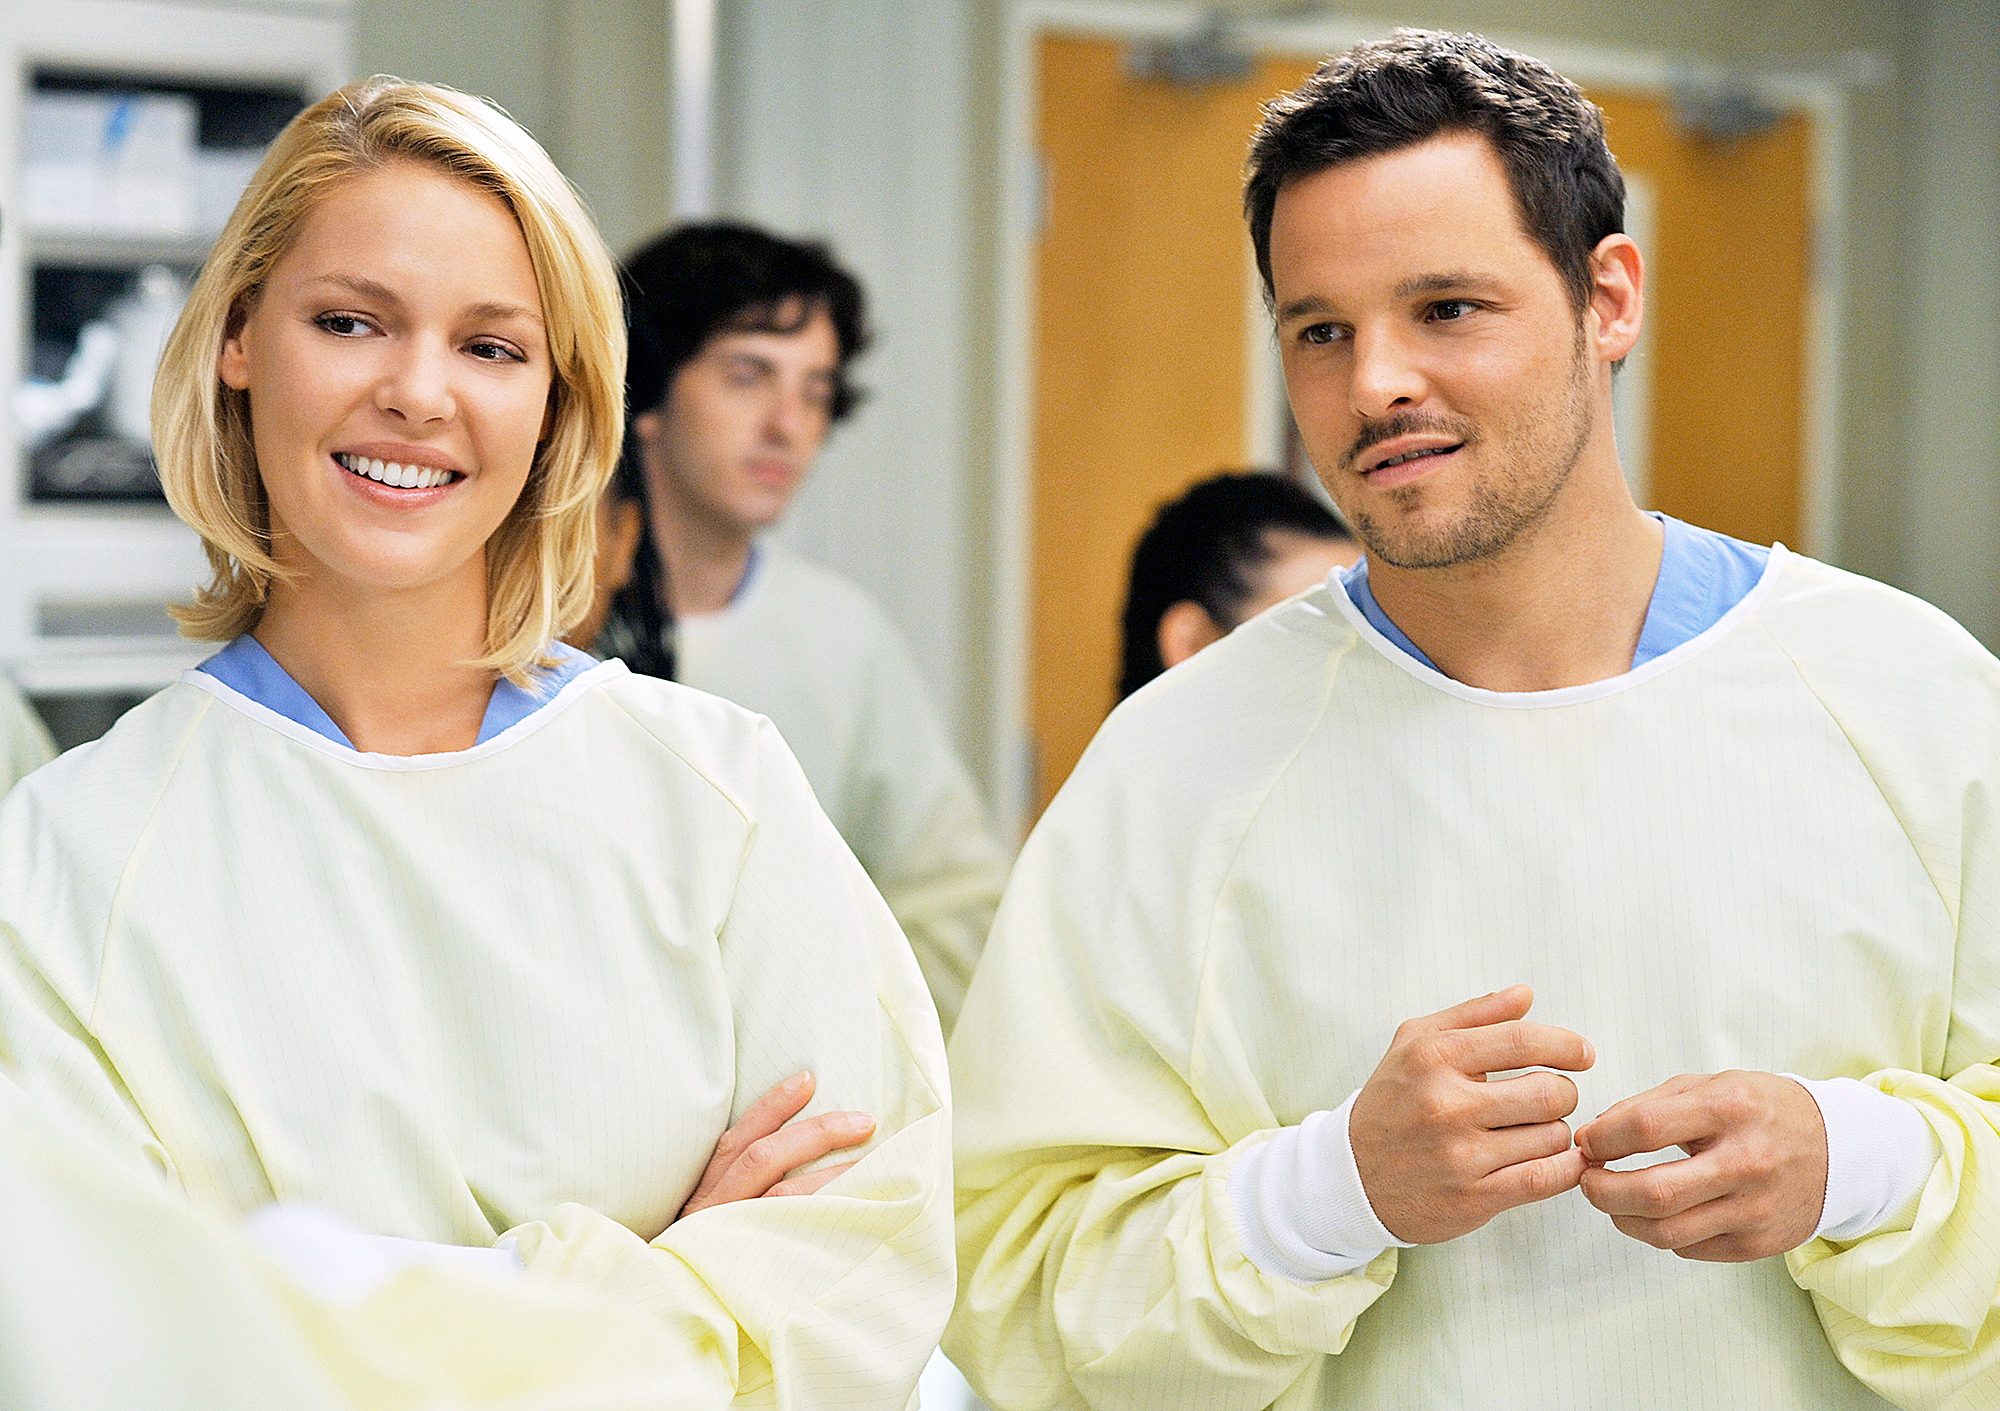 Karev and jo hookup in real life